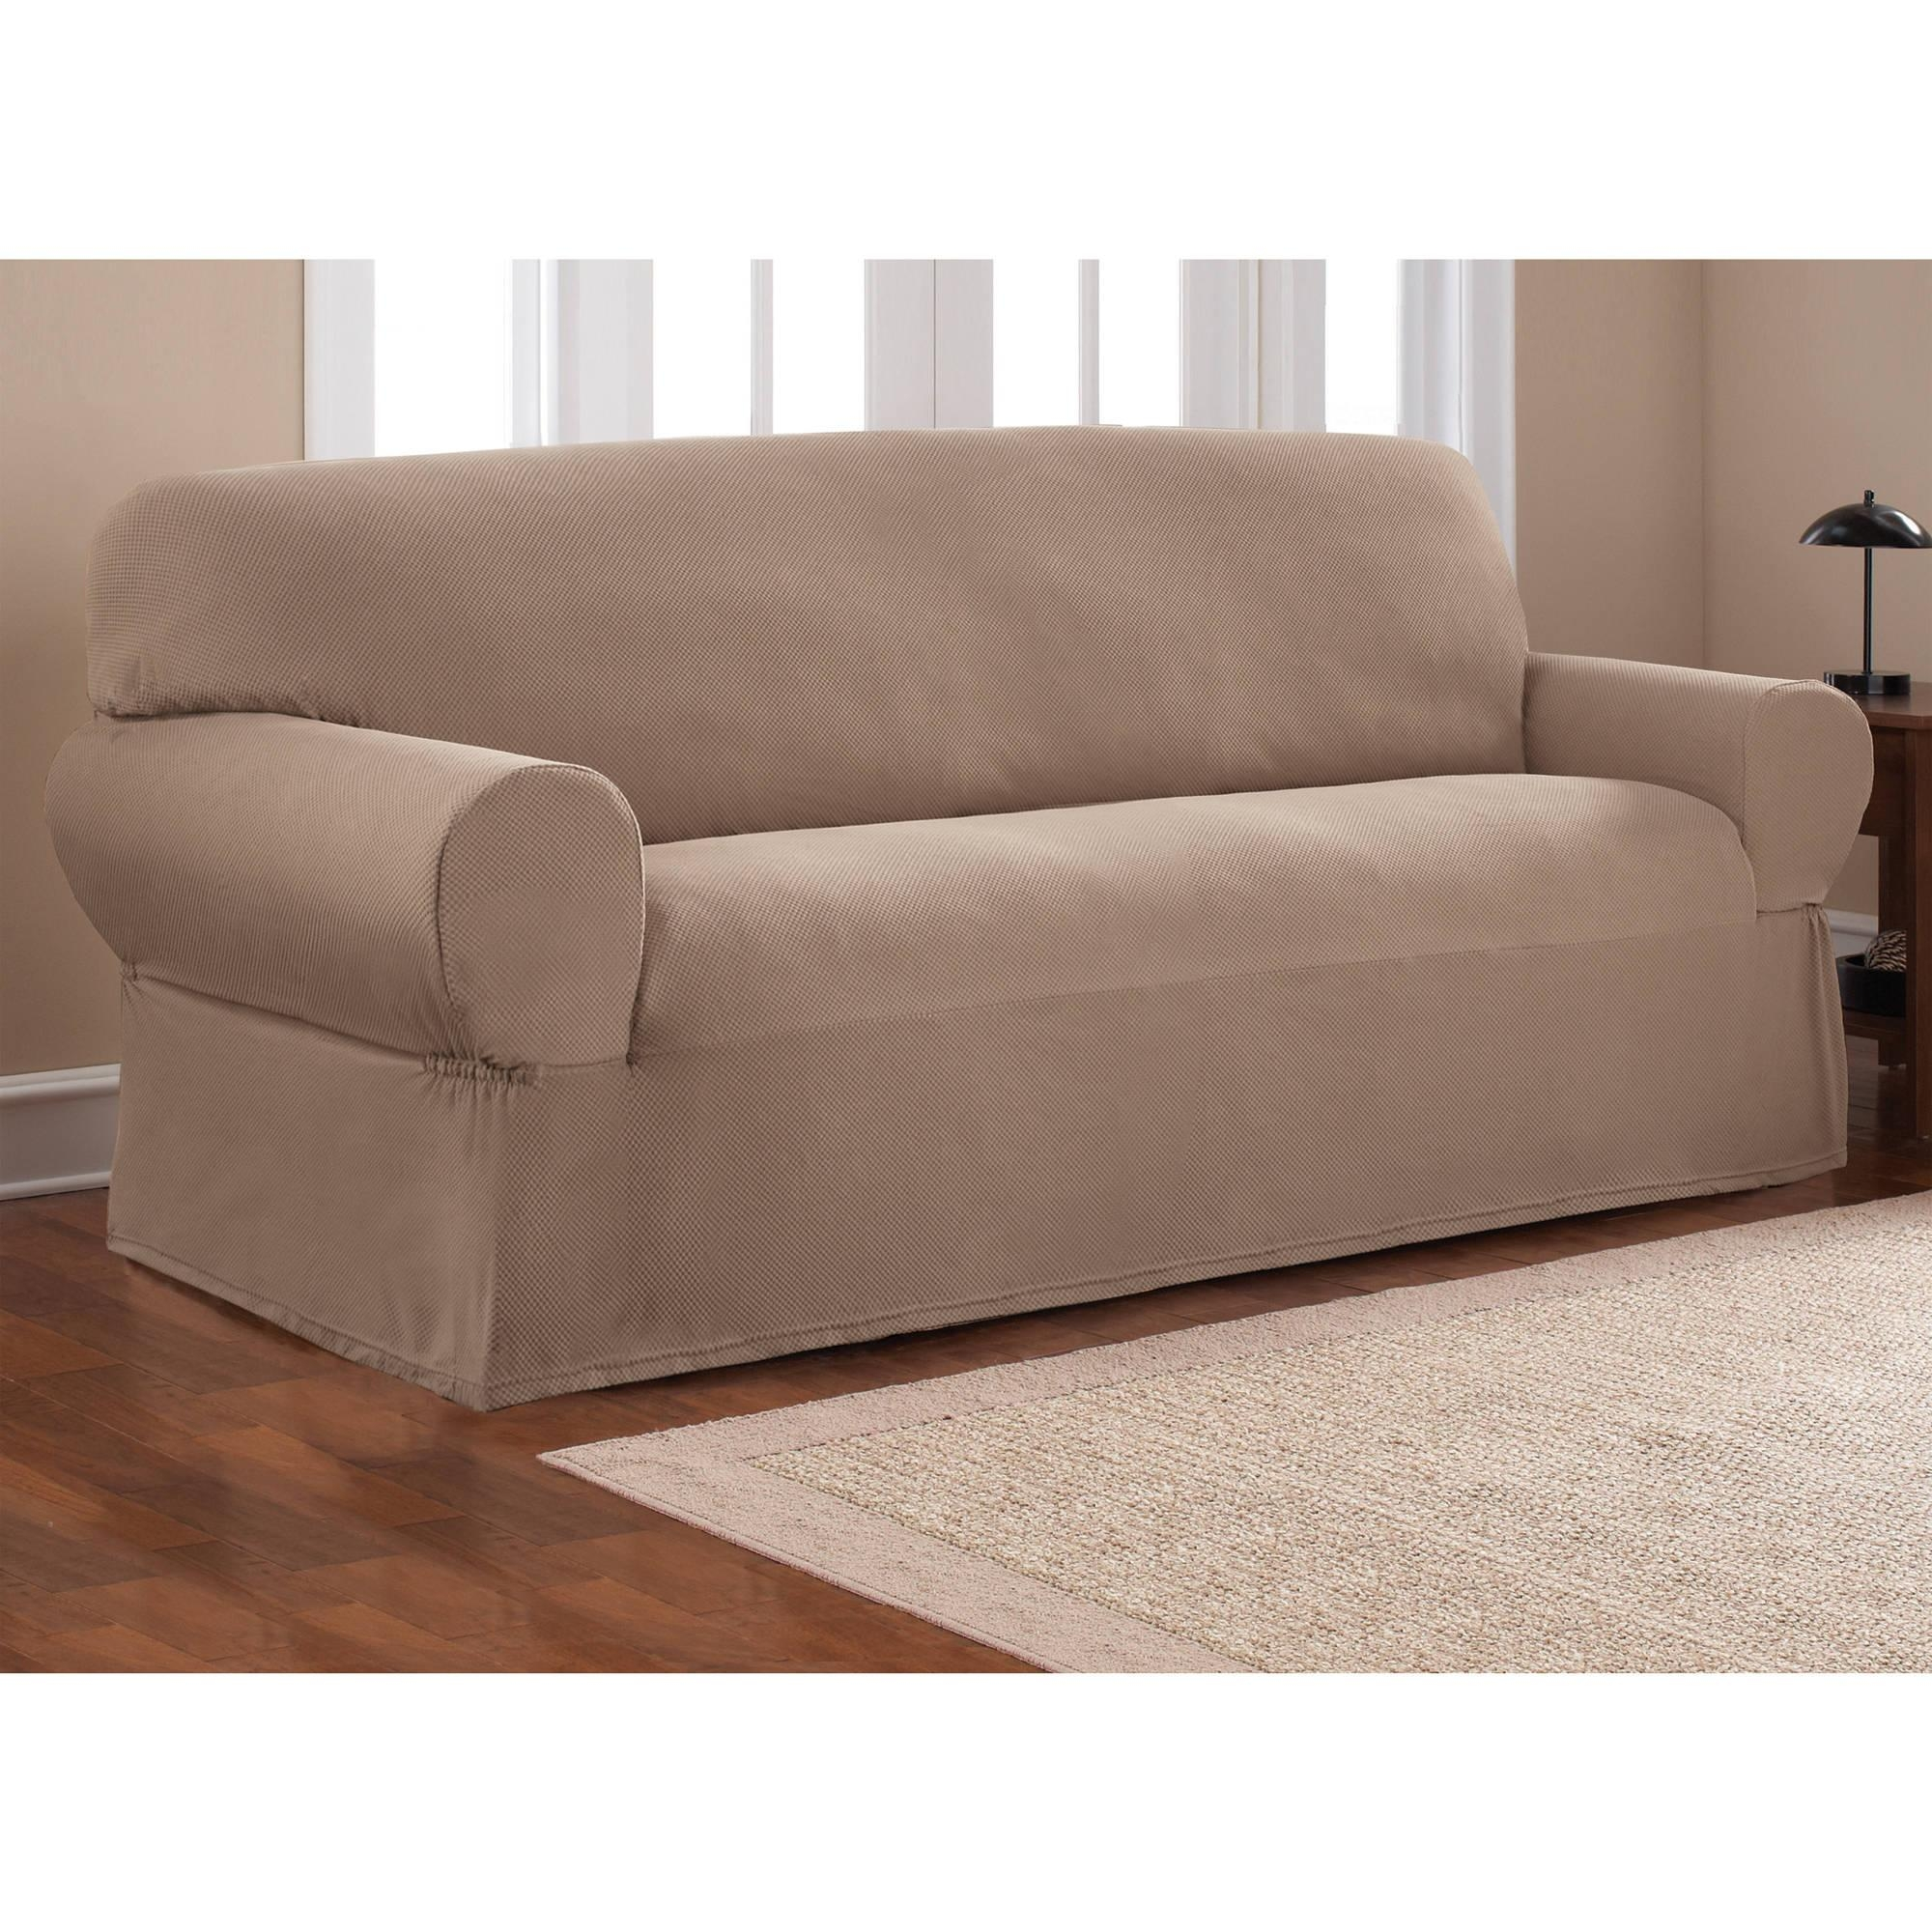 Mainstays 1 Piece Stretch Fabric Sofa Slipcover – Walmart Inside Loveseat Slipcovers T Cushion (View 10 of 20)